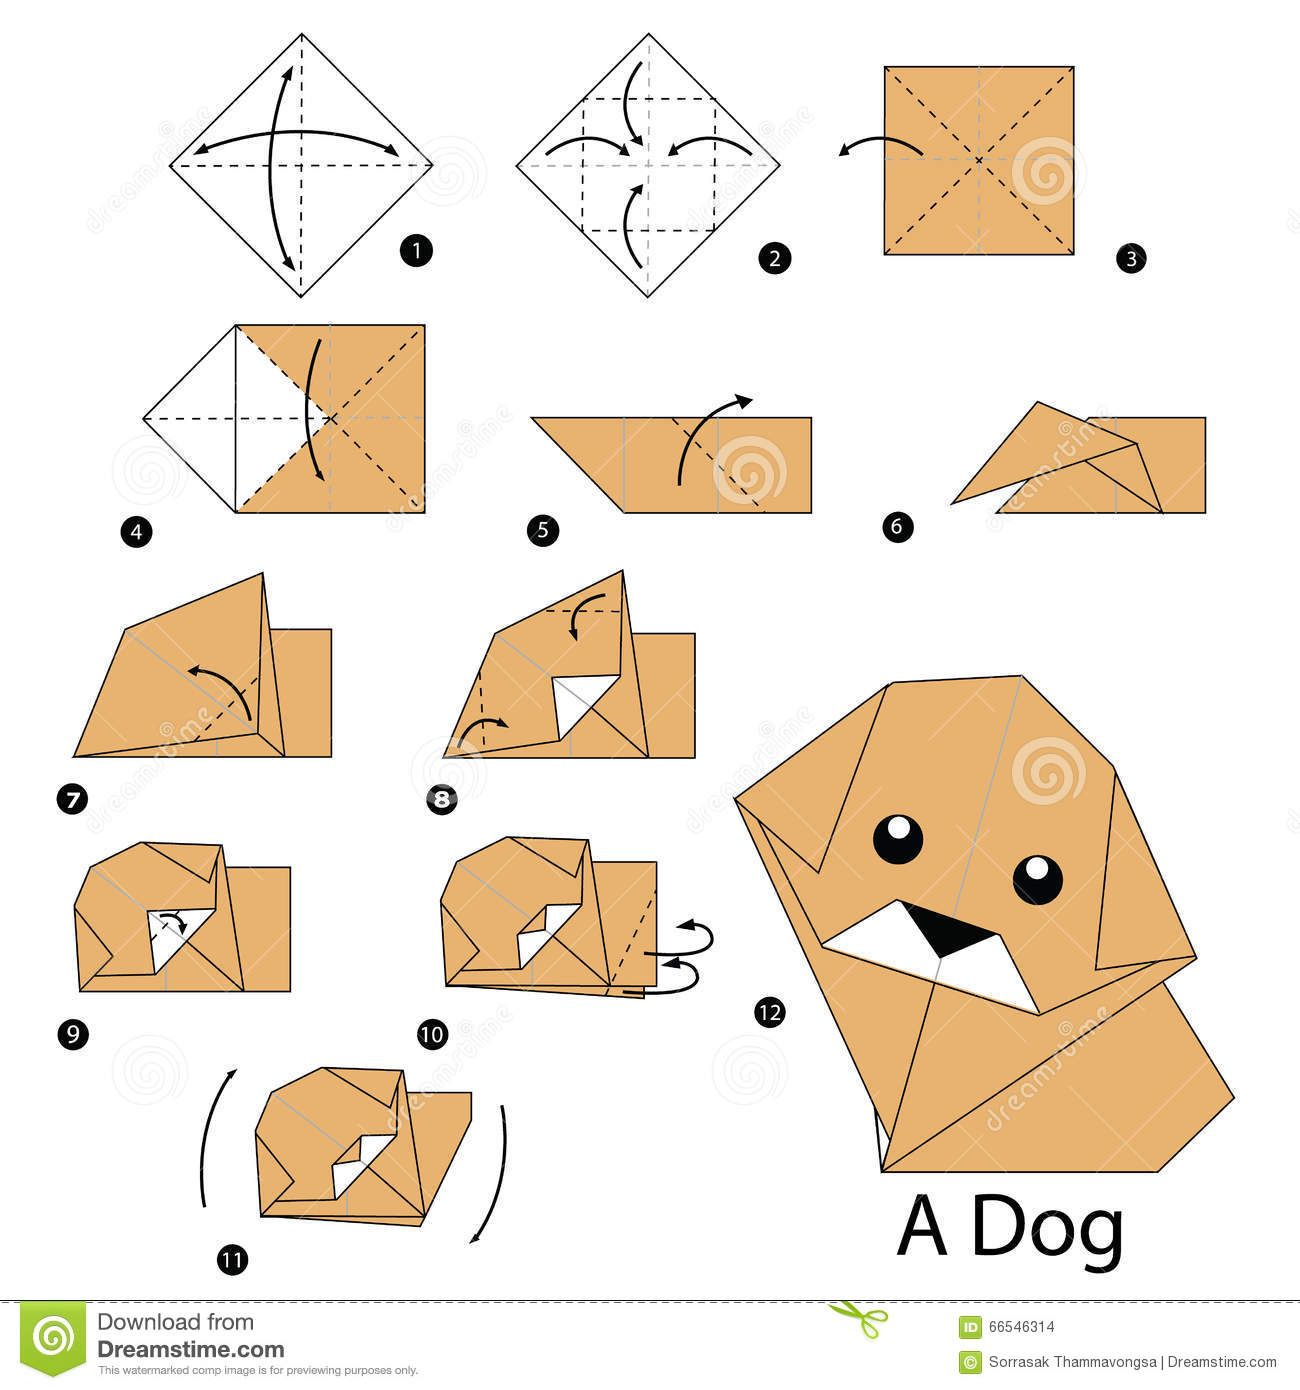 Instructions tape par tape comment faire le chien d for Formulaire po ae artisanat